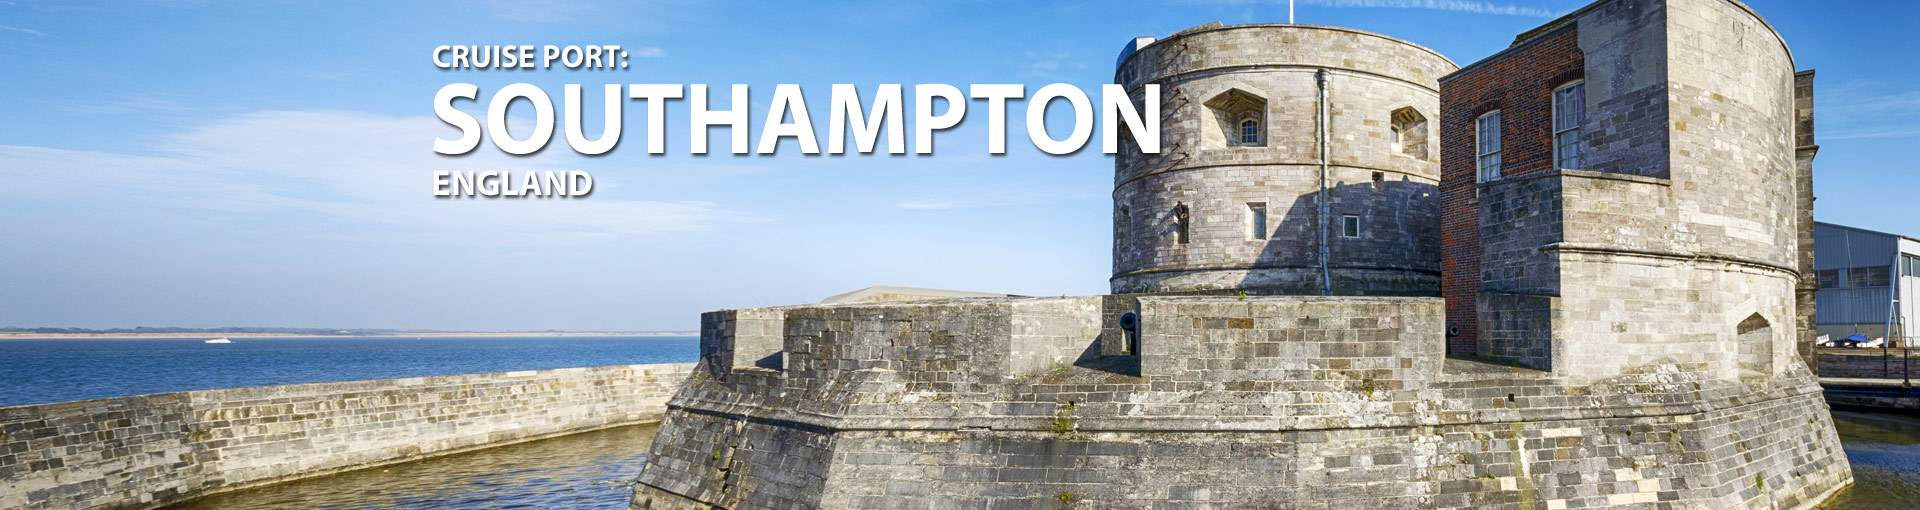 Cruises from Southampton, England